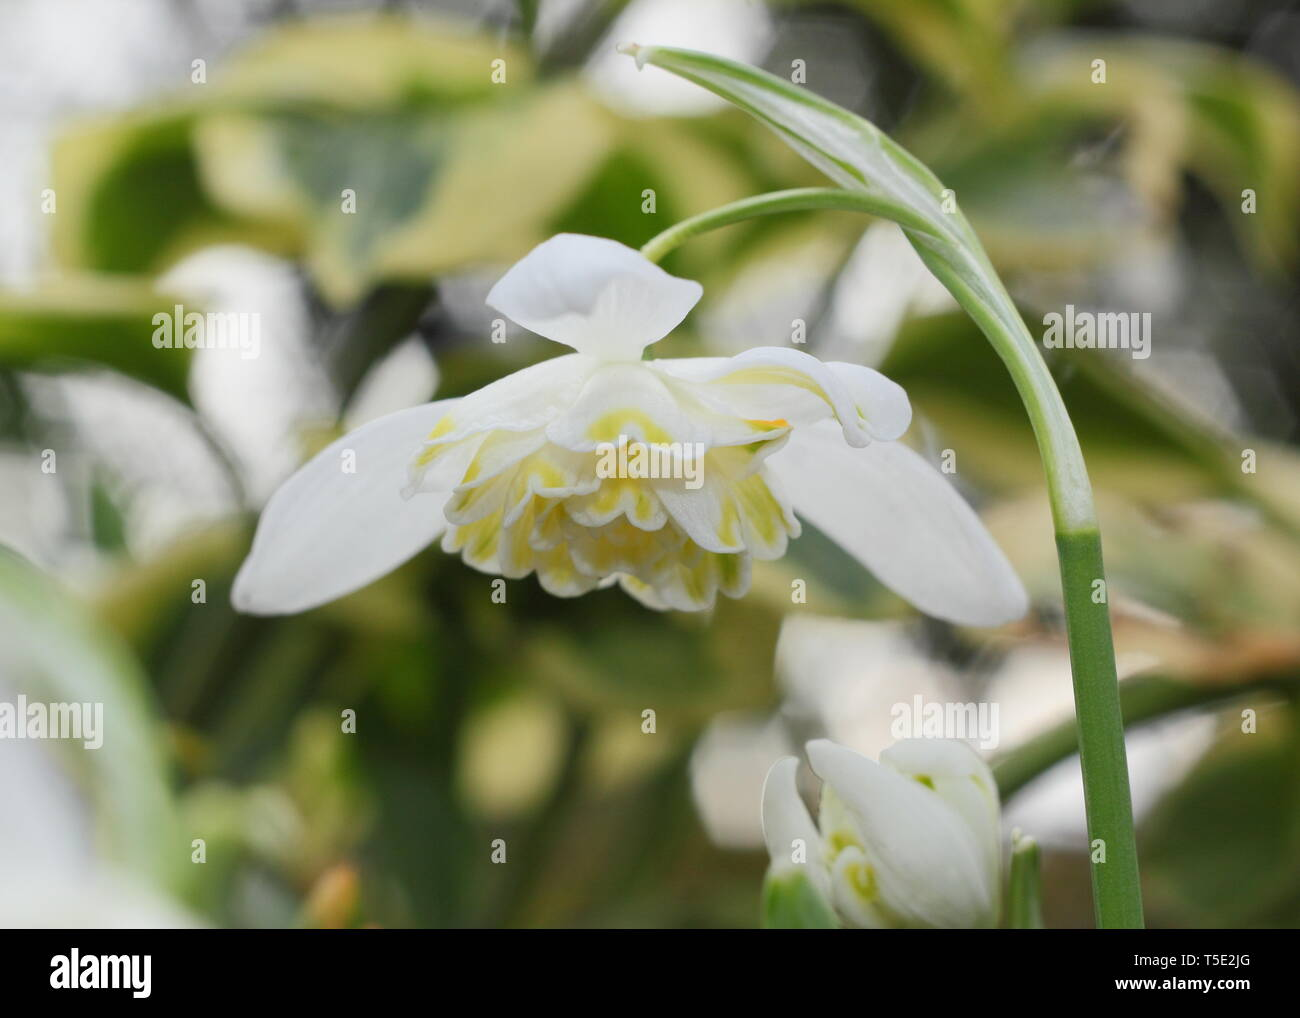 Galanthus nivalis f. pleniflorus 'Lady Elphinstone'. Characteristic double blooms and yellow markings of Lady Elphinstone snowdrop - February, UK - Stock Image